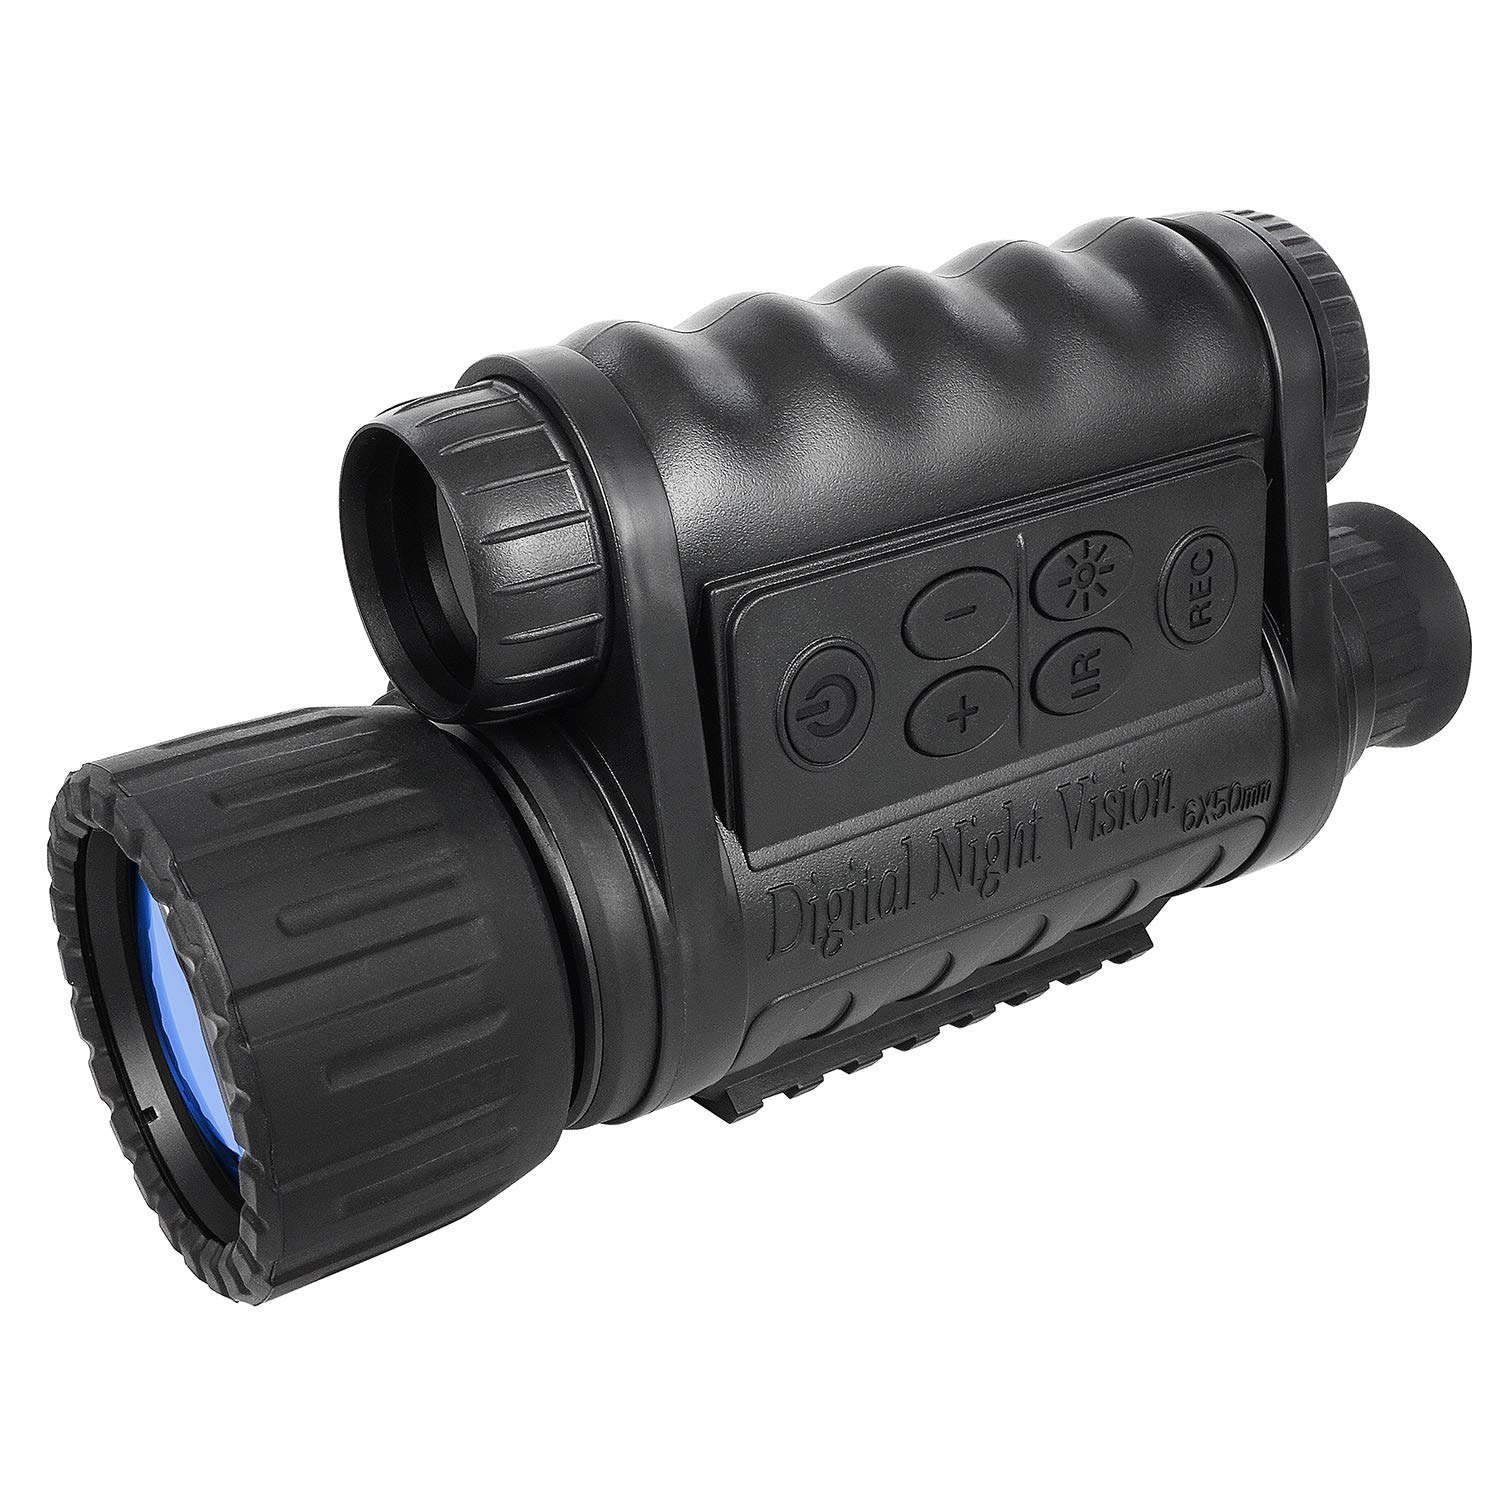 8. Bestguarder 6x50mm HD Night Vision Monocular